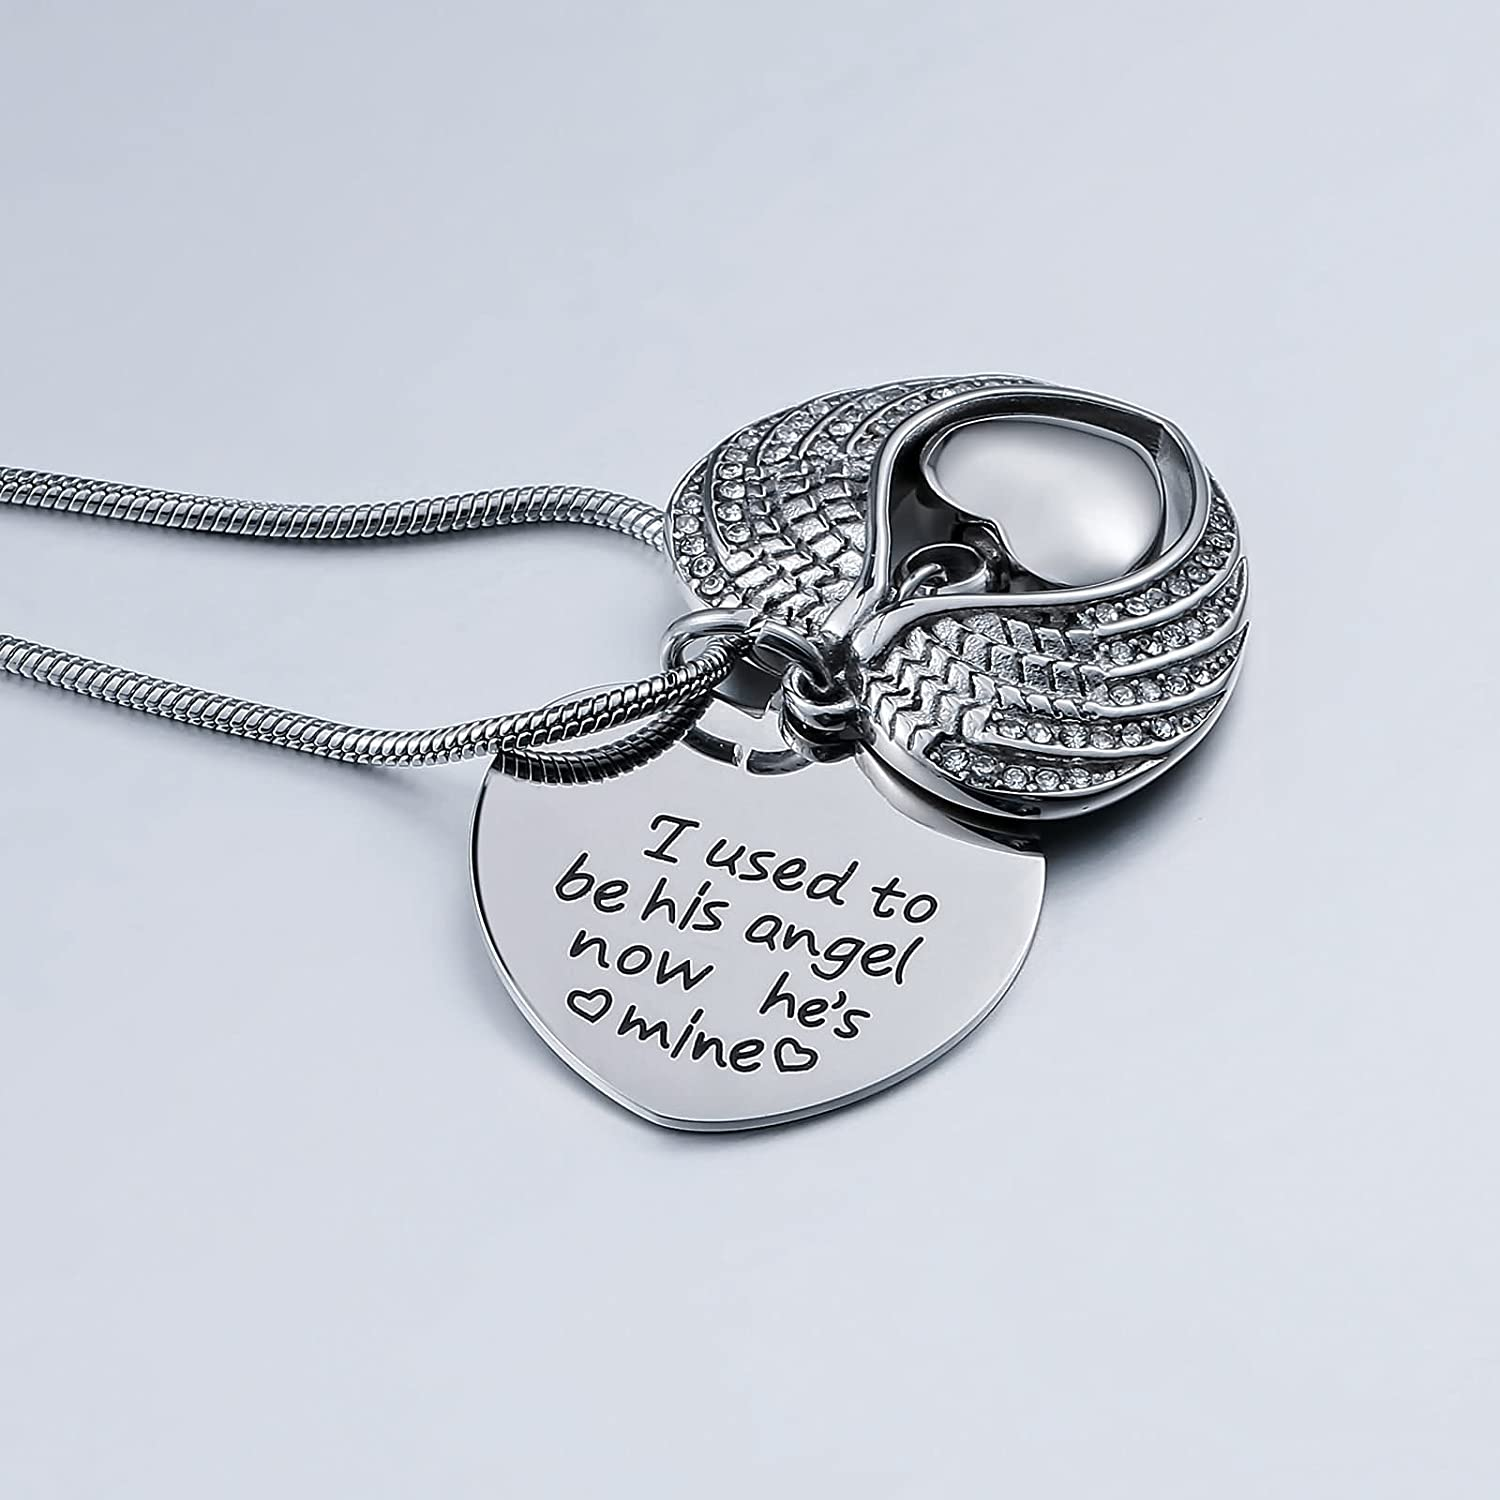 Beydodo Stainless Steel Memorial Necklace Urn Engraved Ash Necklace Urn Wings Heart Cremation Ash Necklace